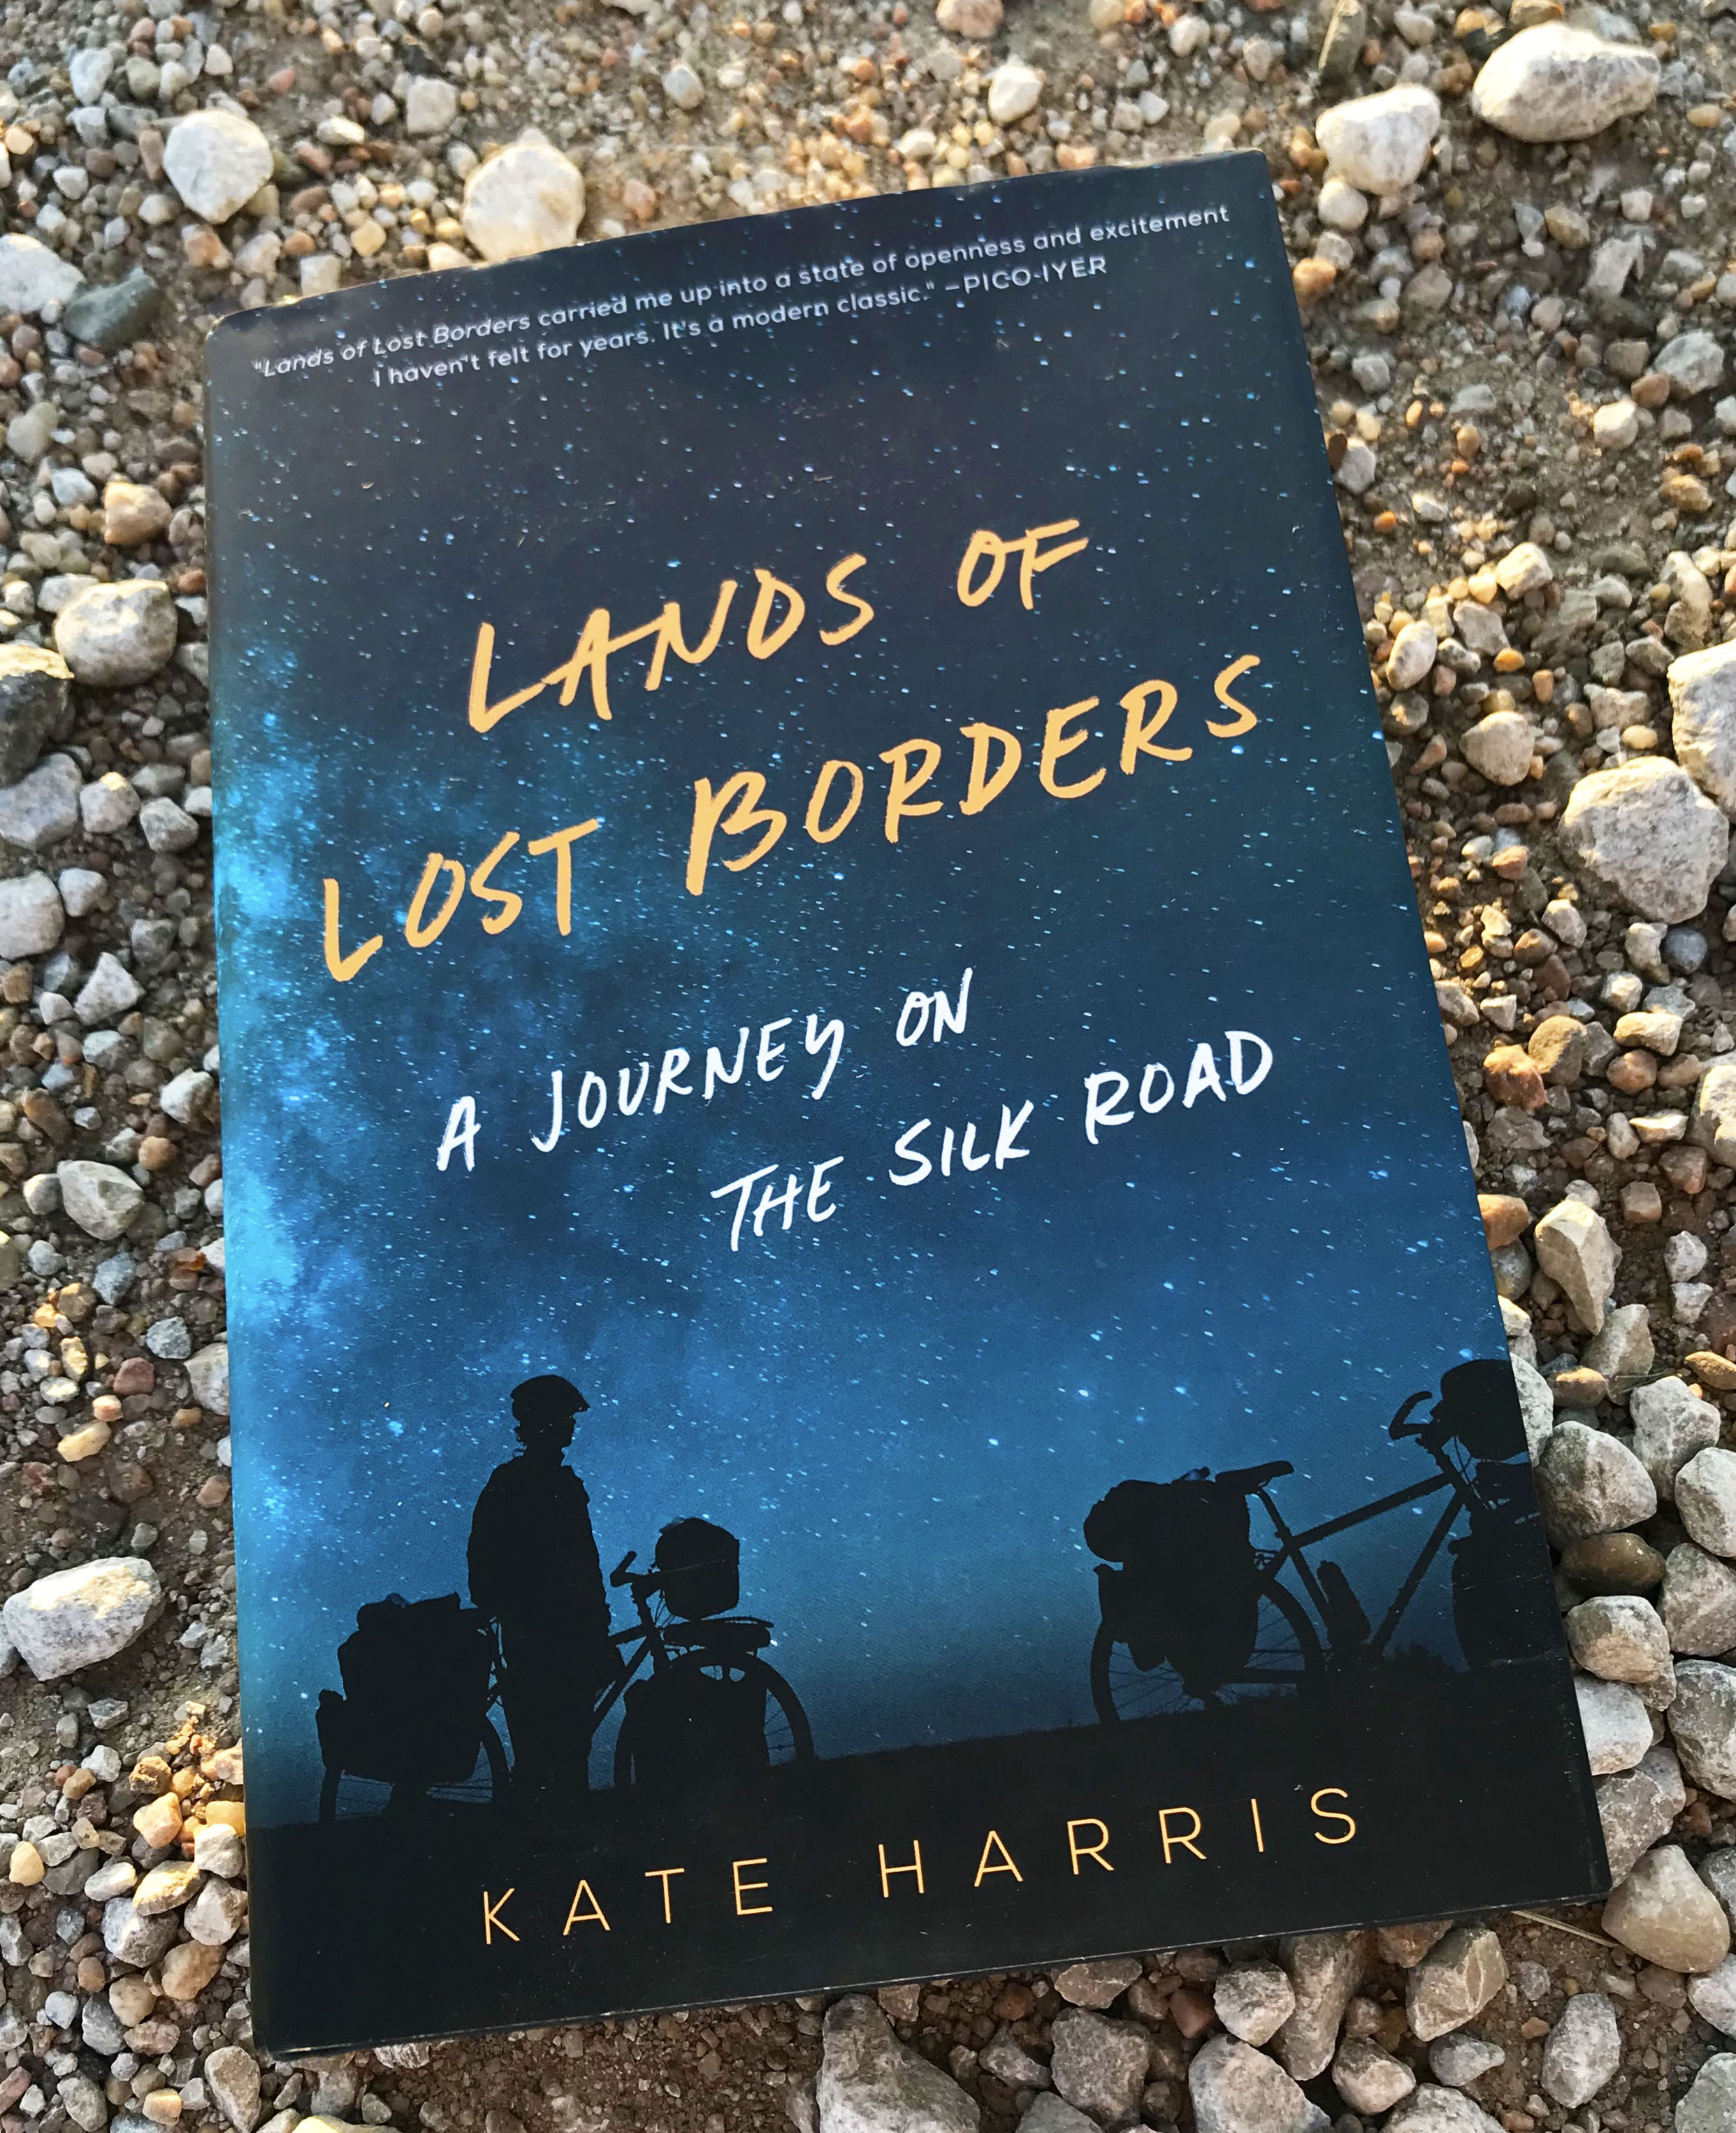 Lands of Lost Boarders by Kate Harris